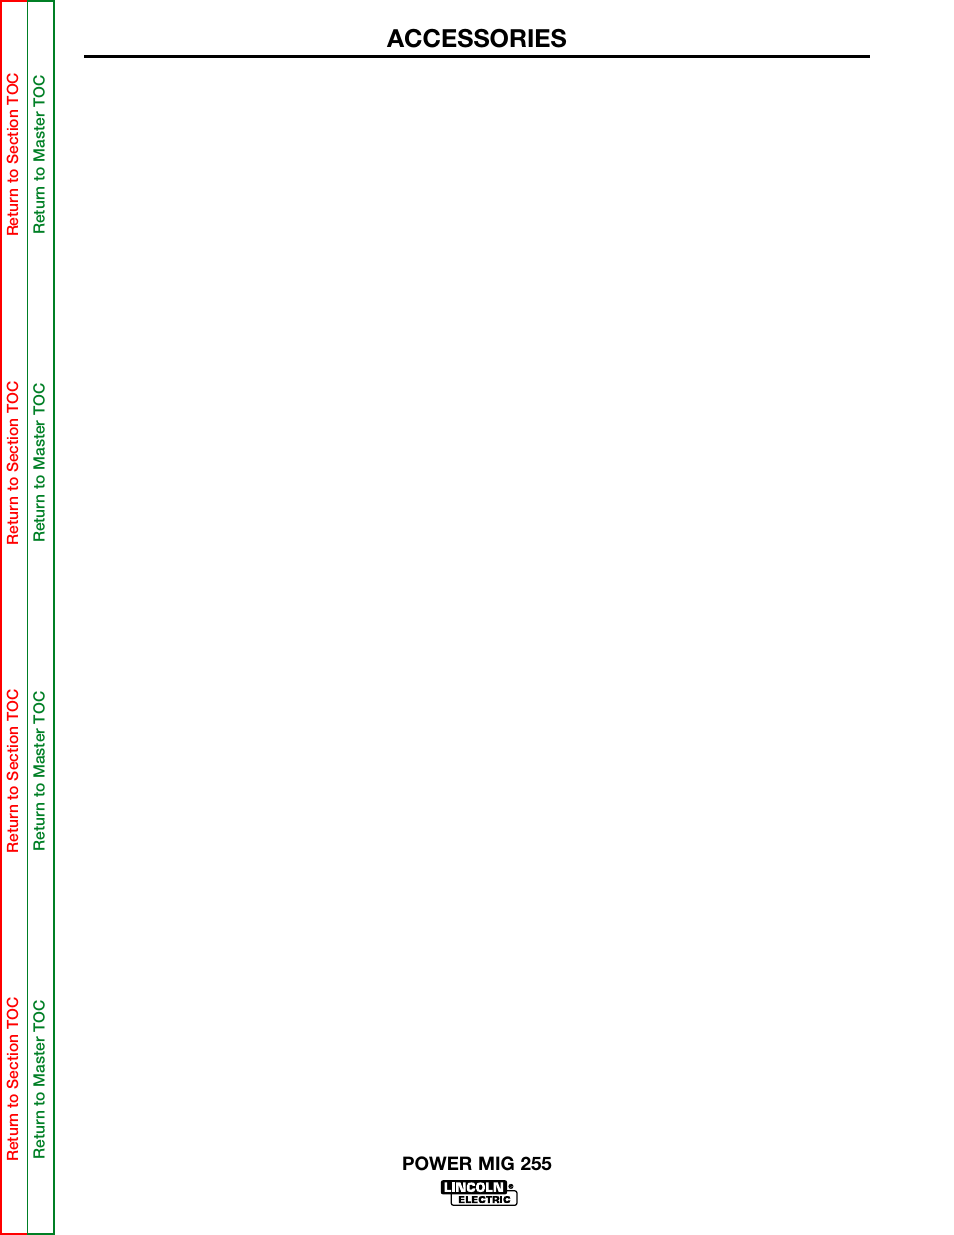 Described In Operating Instructions For Timer Kit Accessories Trigger Lincoln Electric Power Mig 255 Svm144 B User Manual Page 23 108